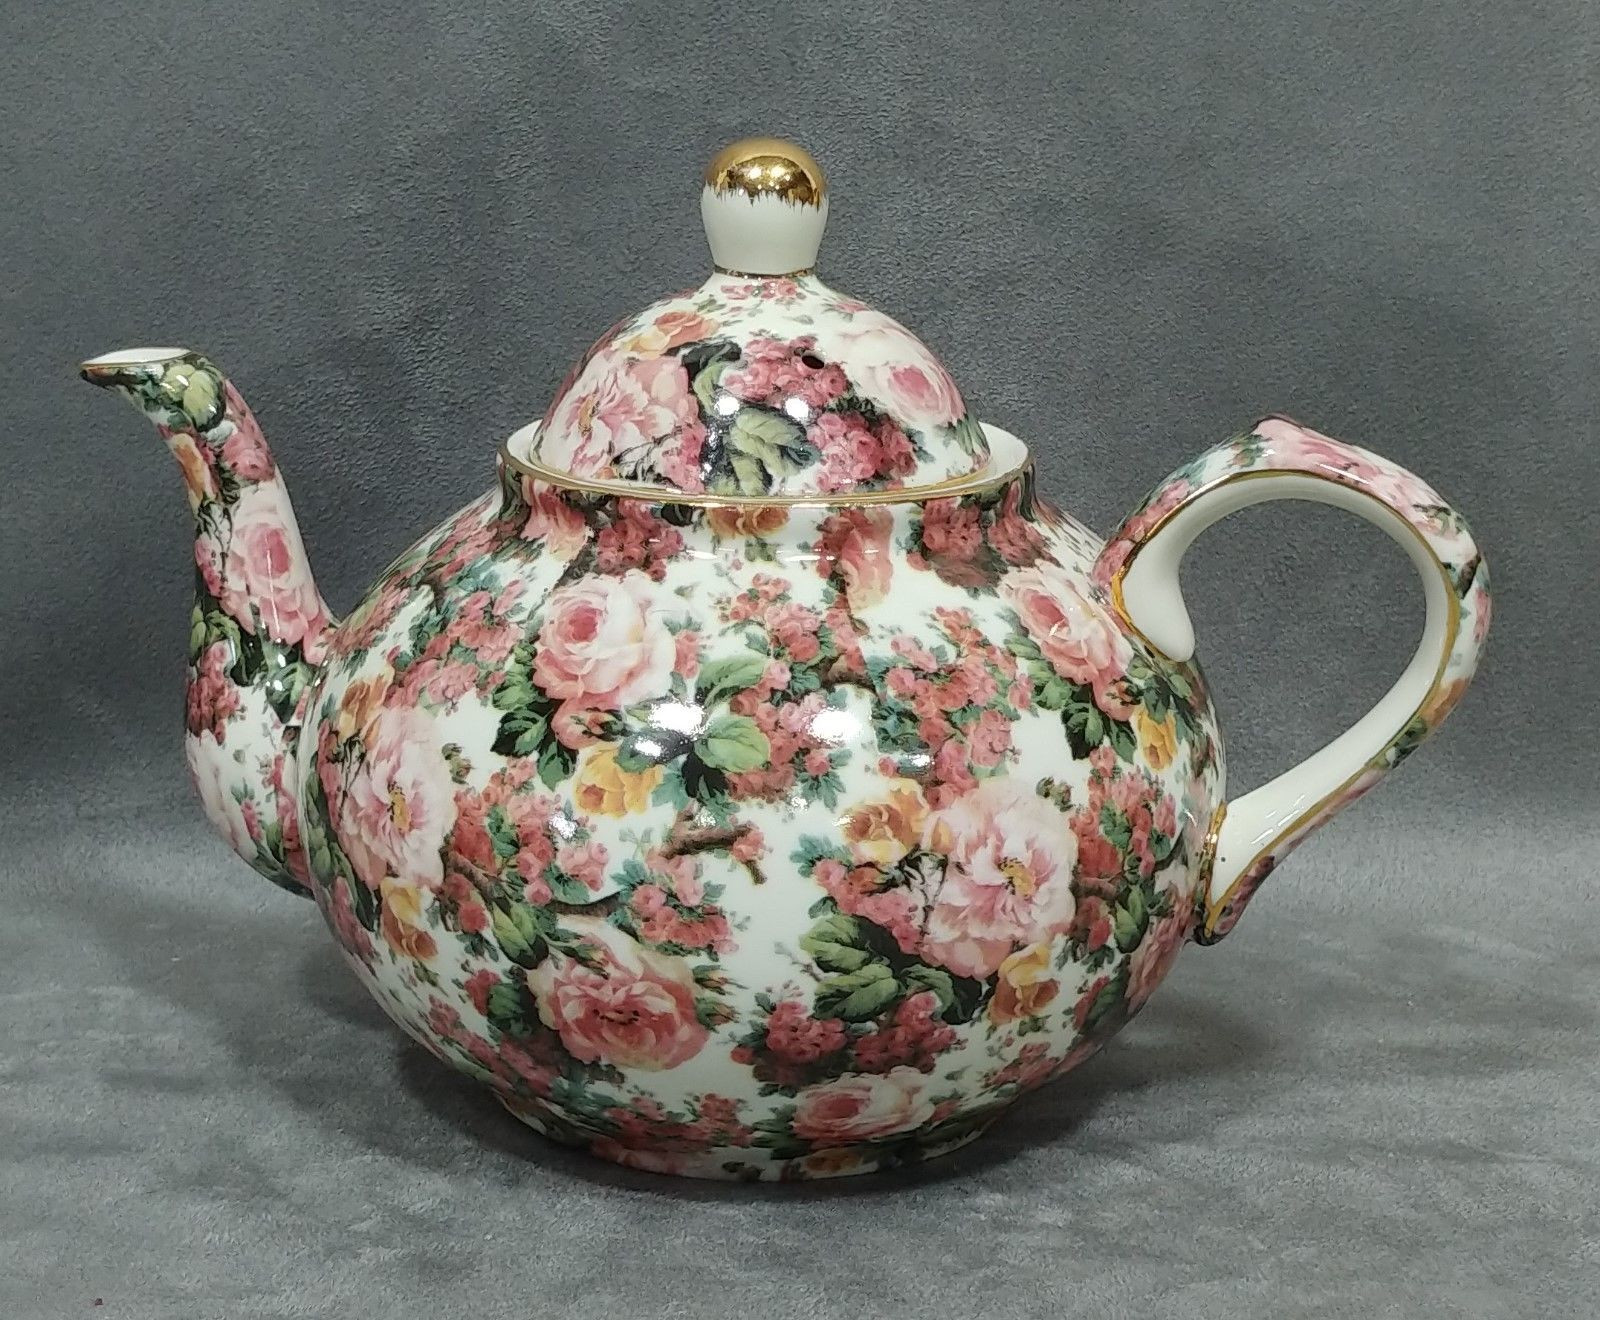 formalities by baum bros rose vase of vintage formalities baum bros roses chintz porcelain teapot 24kt inside vintage formalities baum bros roses chintz porcelain teapot 24kt 1 of 6 see more